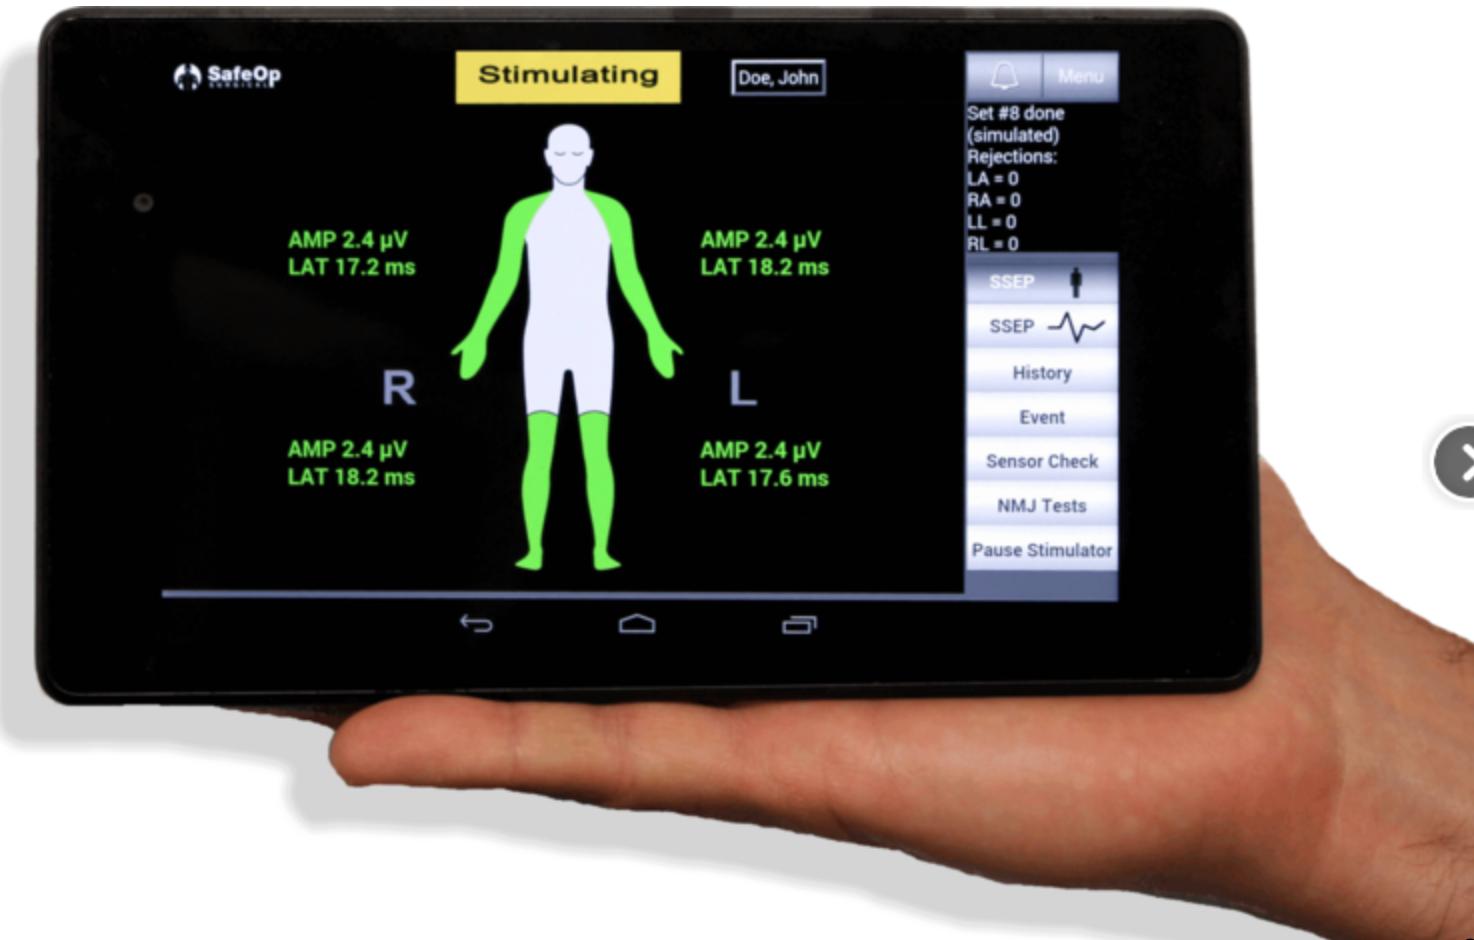 Alphatec Spine acquires neuromonitoring platform for $27M in cash and stock